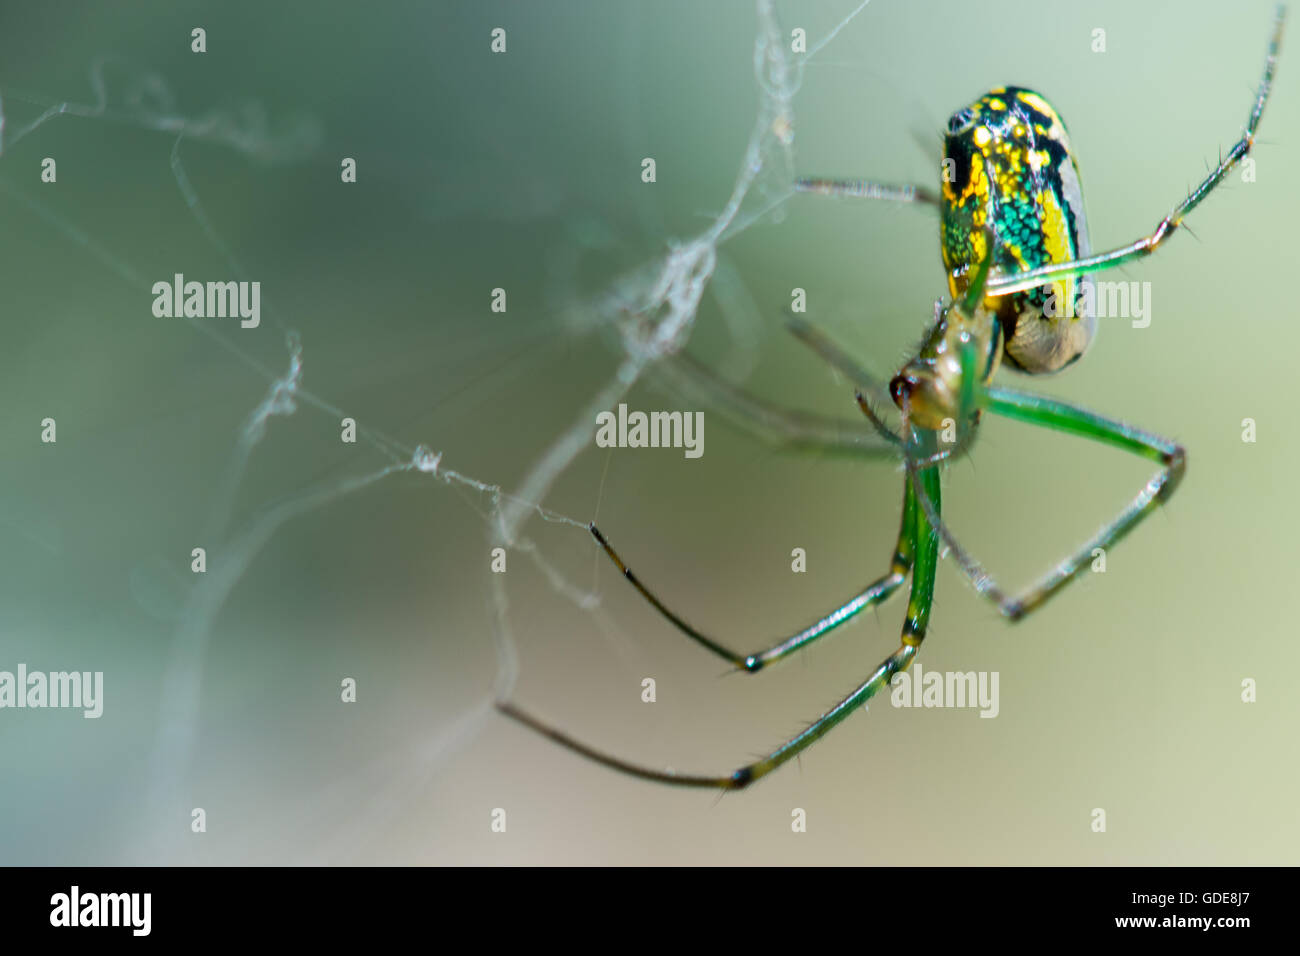 Orchard Orb Weaver Sitting On Their Web - Stock Image